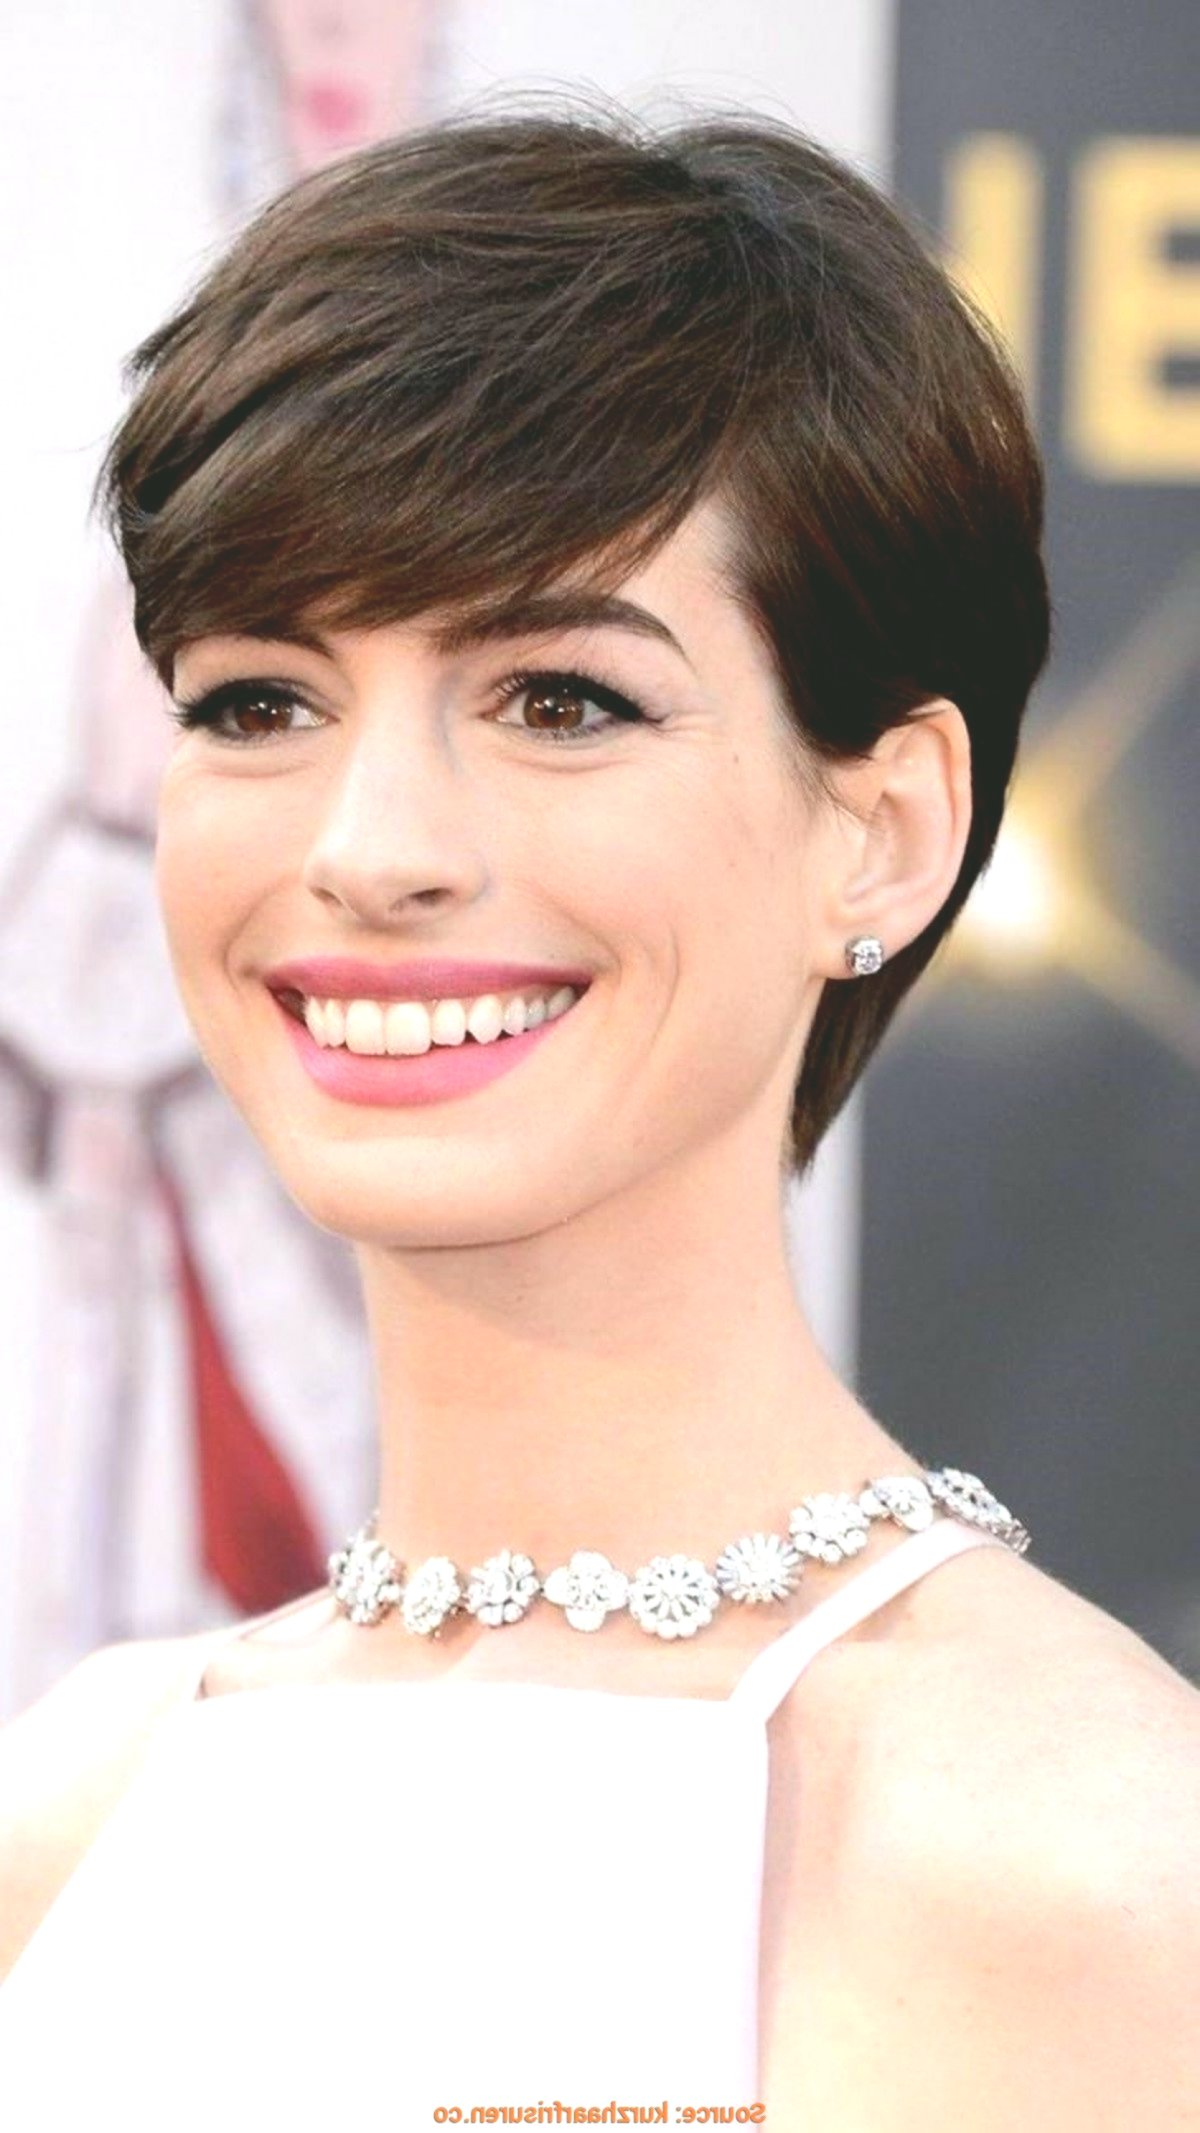 contemporary hairstyles for slim faces décor-Wonderful Hairstyles For Narrow-Faces Decoration